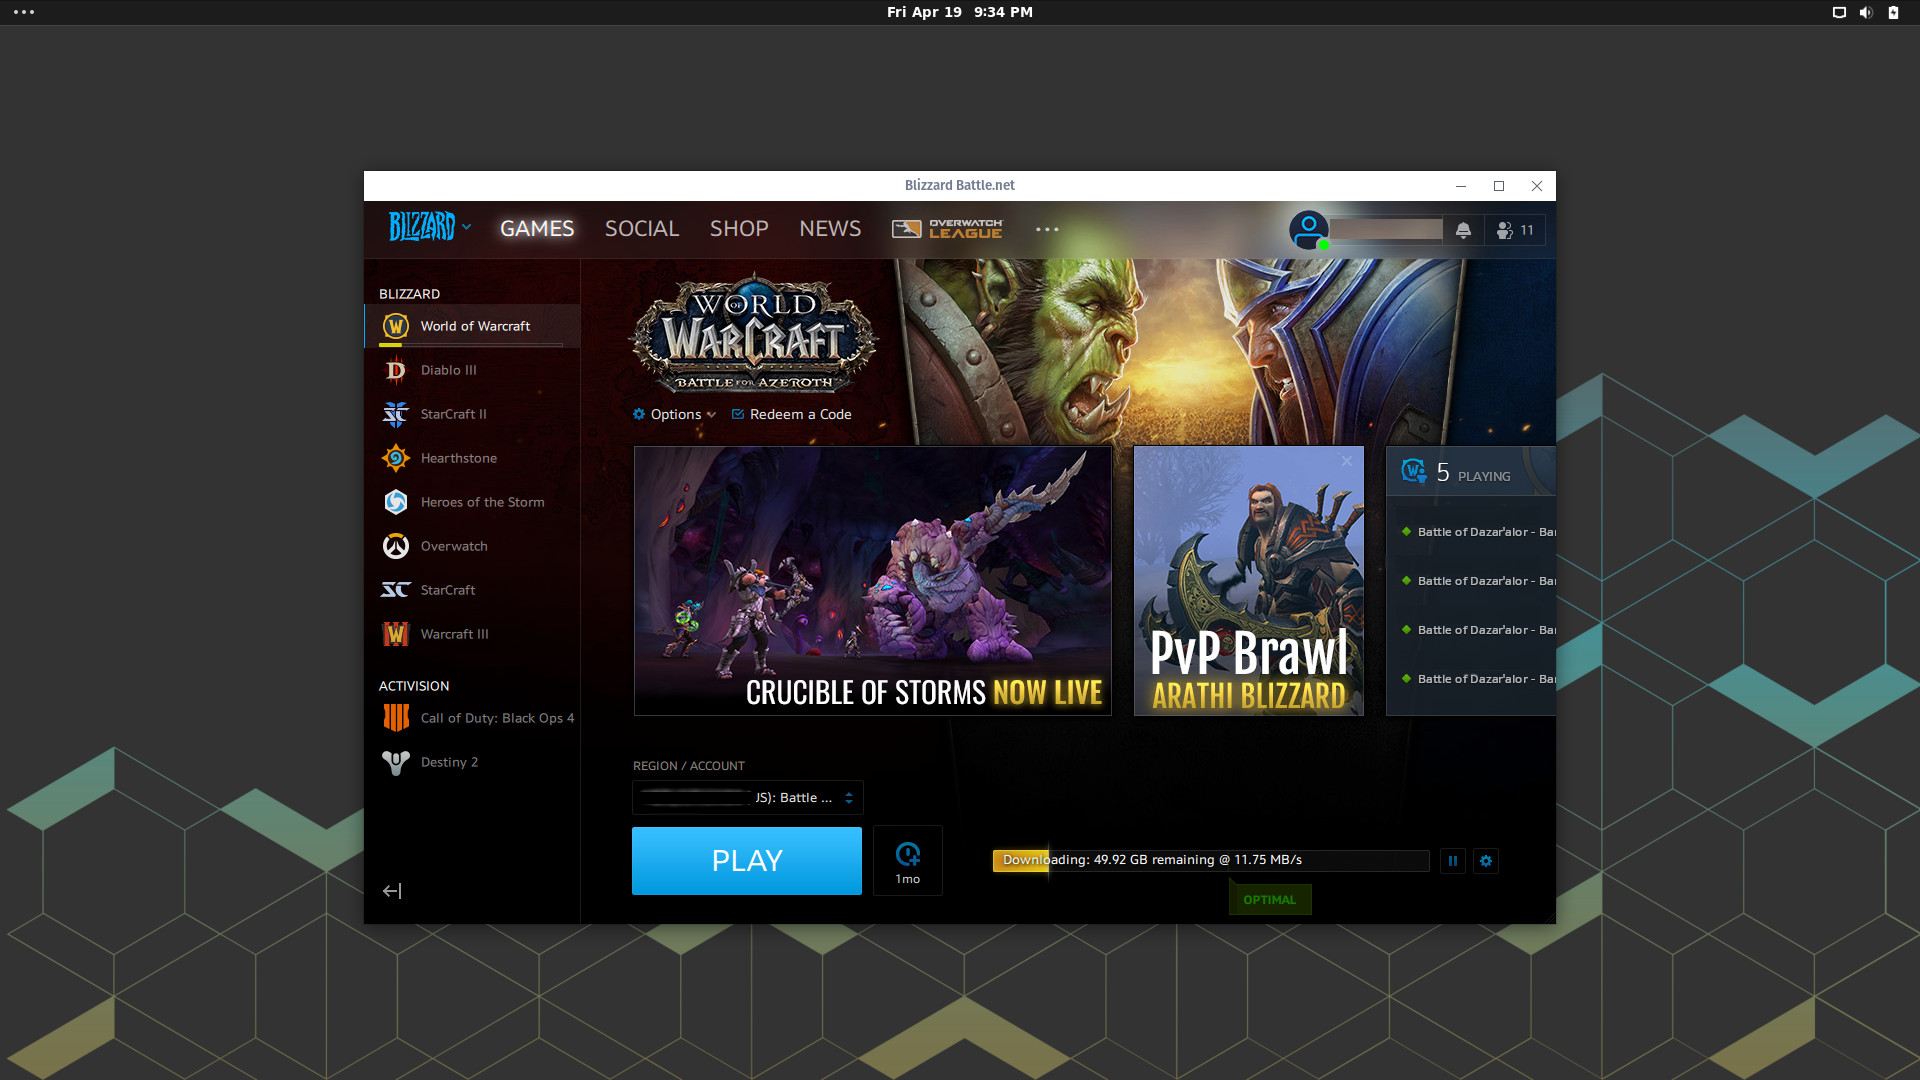 blizzard launcher not showing play button